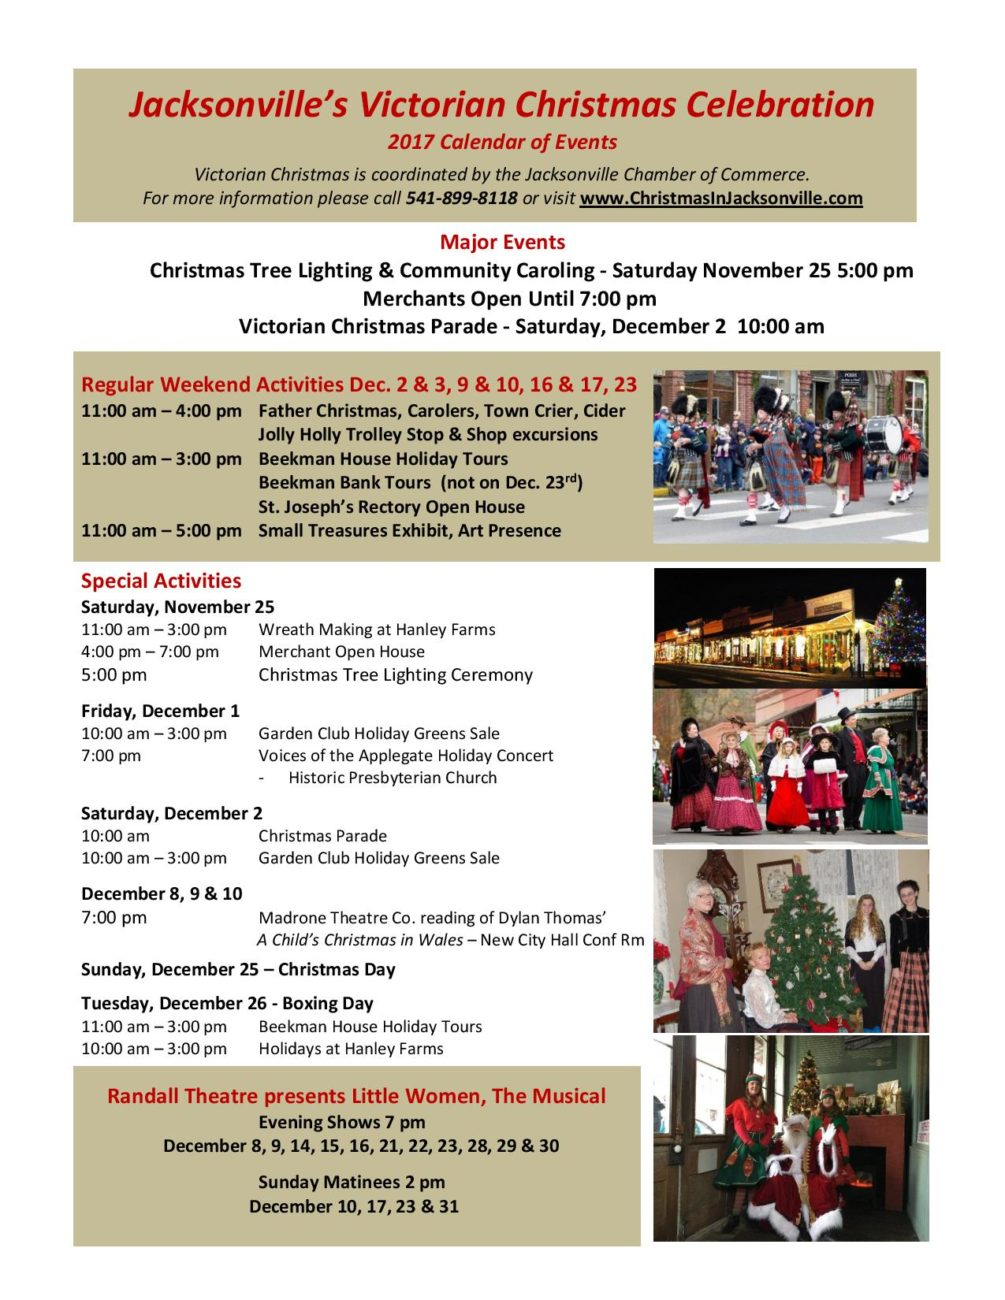 Celebrate Victorian Christmas in Jacksonville 2017 - Southern Oregon ...